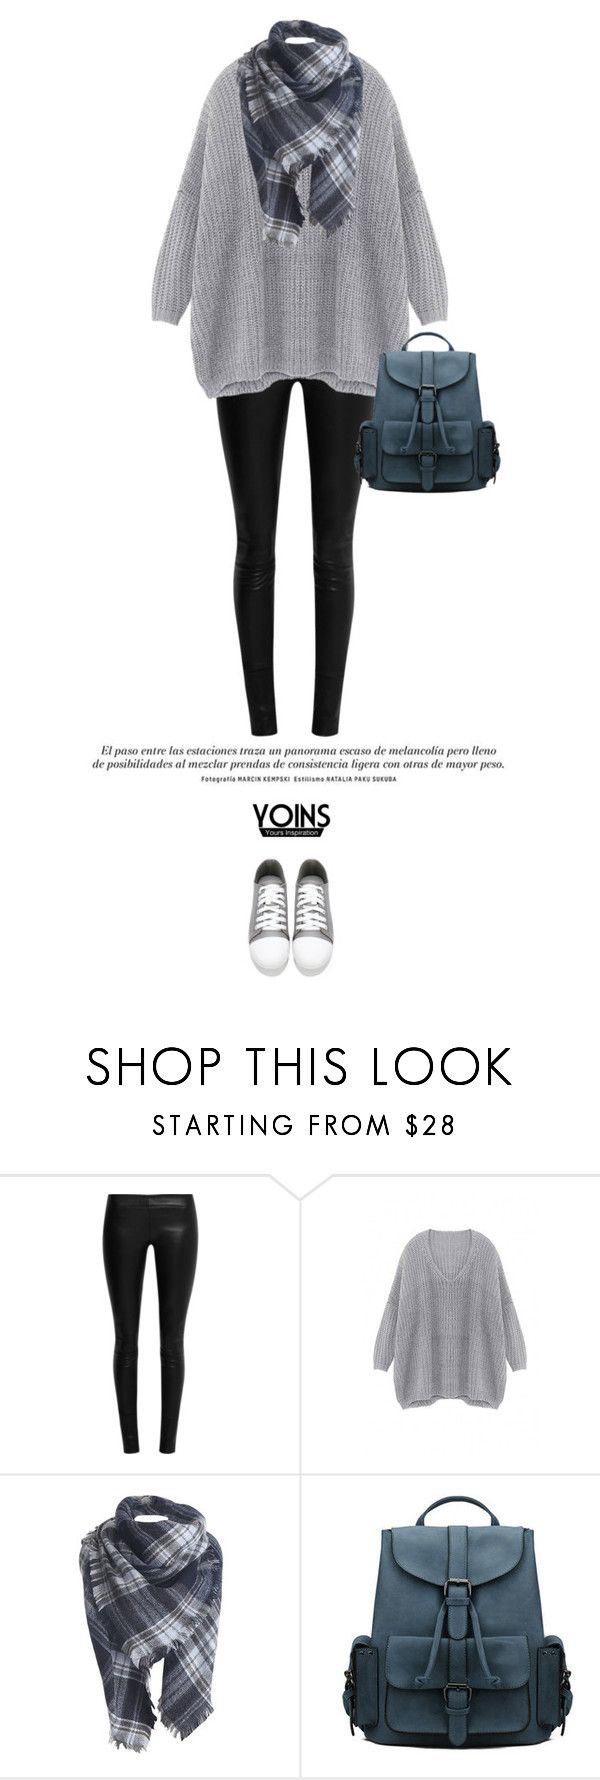 """""""YOINS #81"""" by anja-173 on Polyvore featuring The Row, yoins, yoinscollection and loveyoins"""